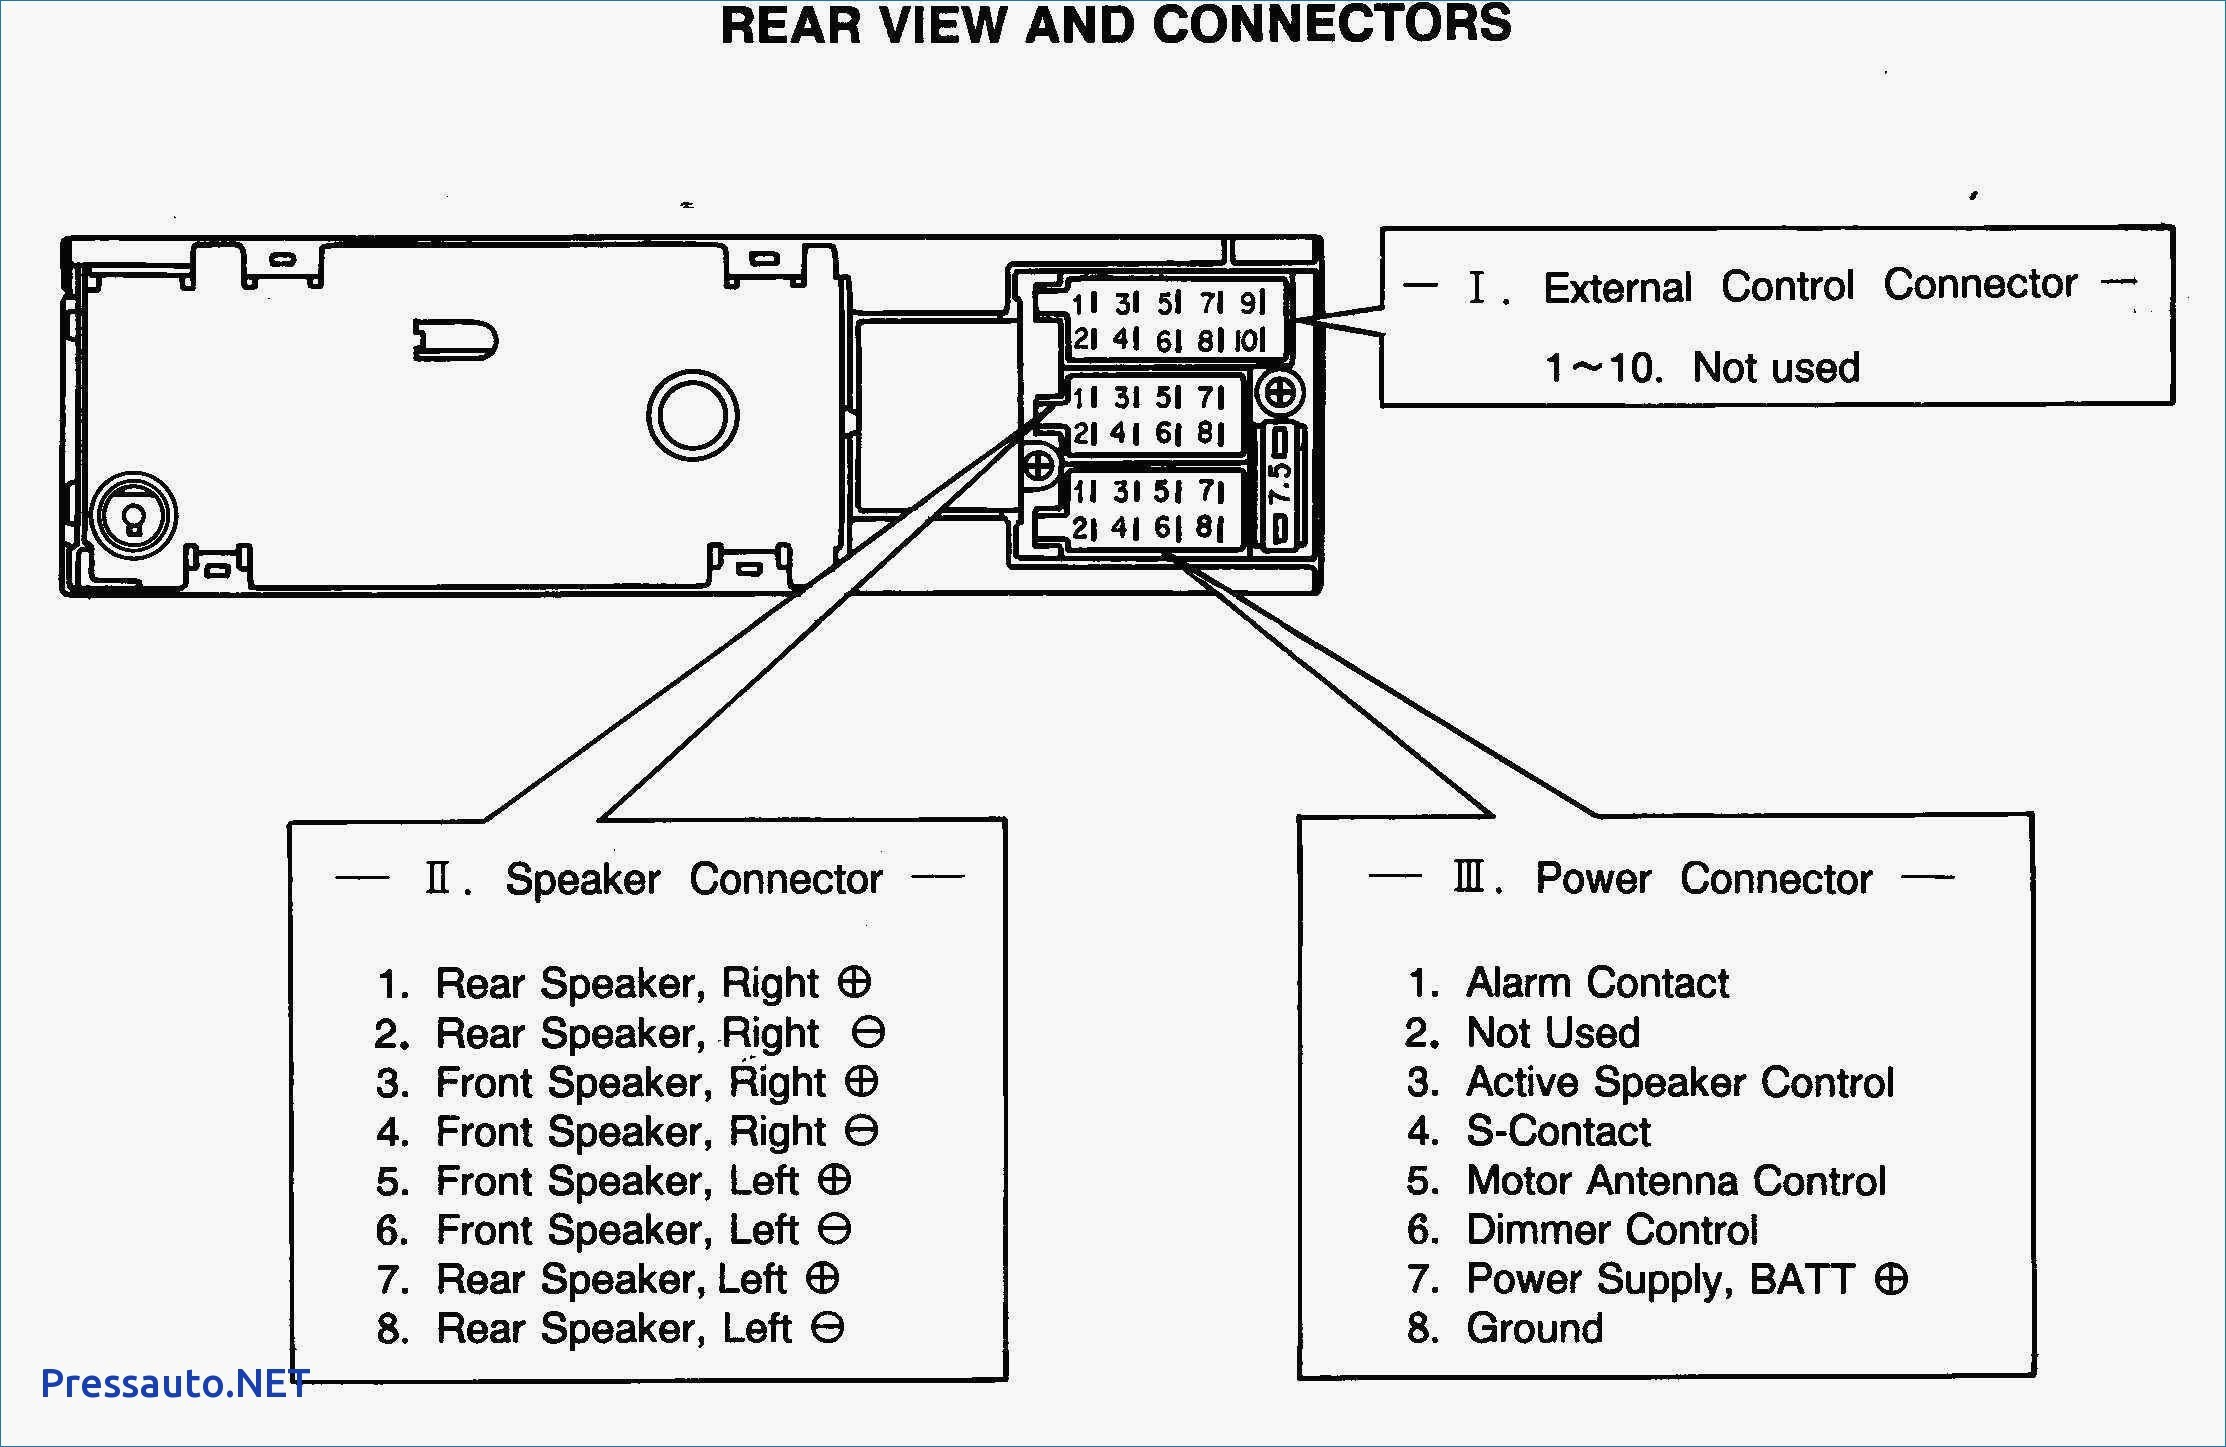 Wire Harness Diagram Beautiful aftermarket Radio Wiring Diagram Diagram Of Wire Harness Diagram